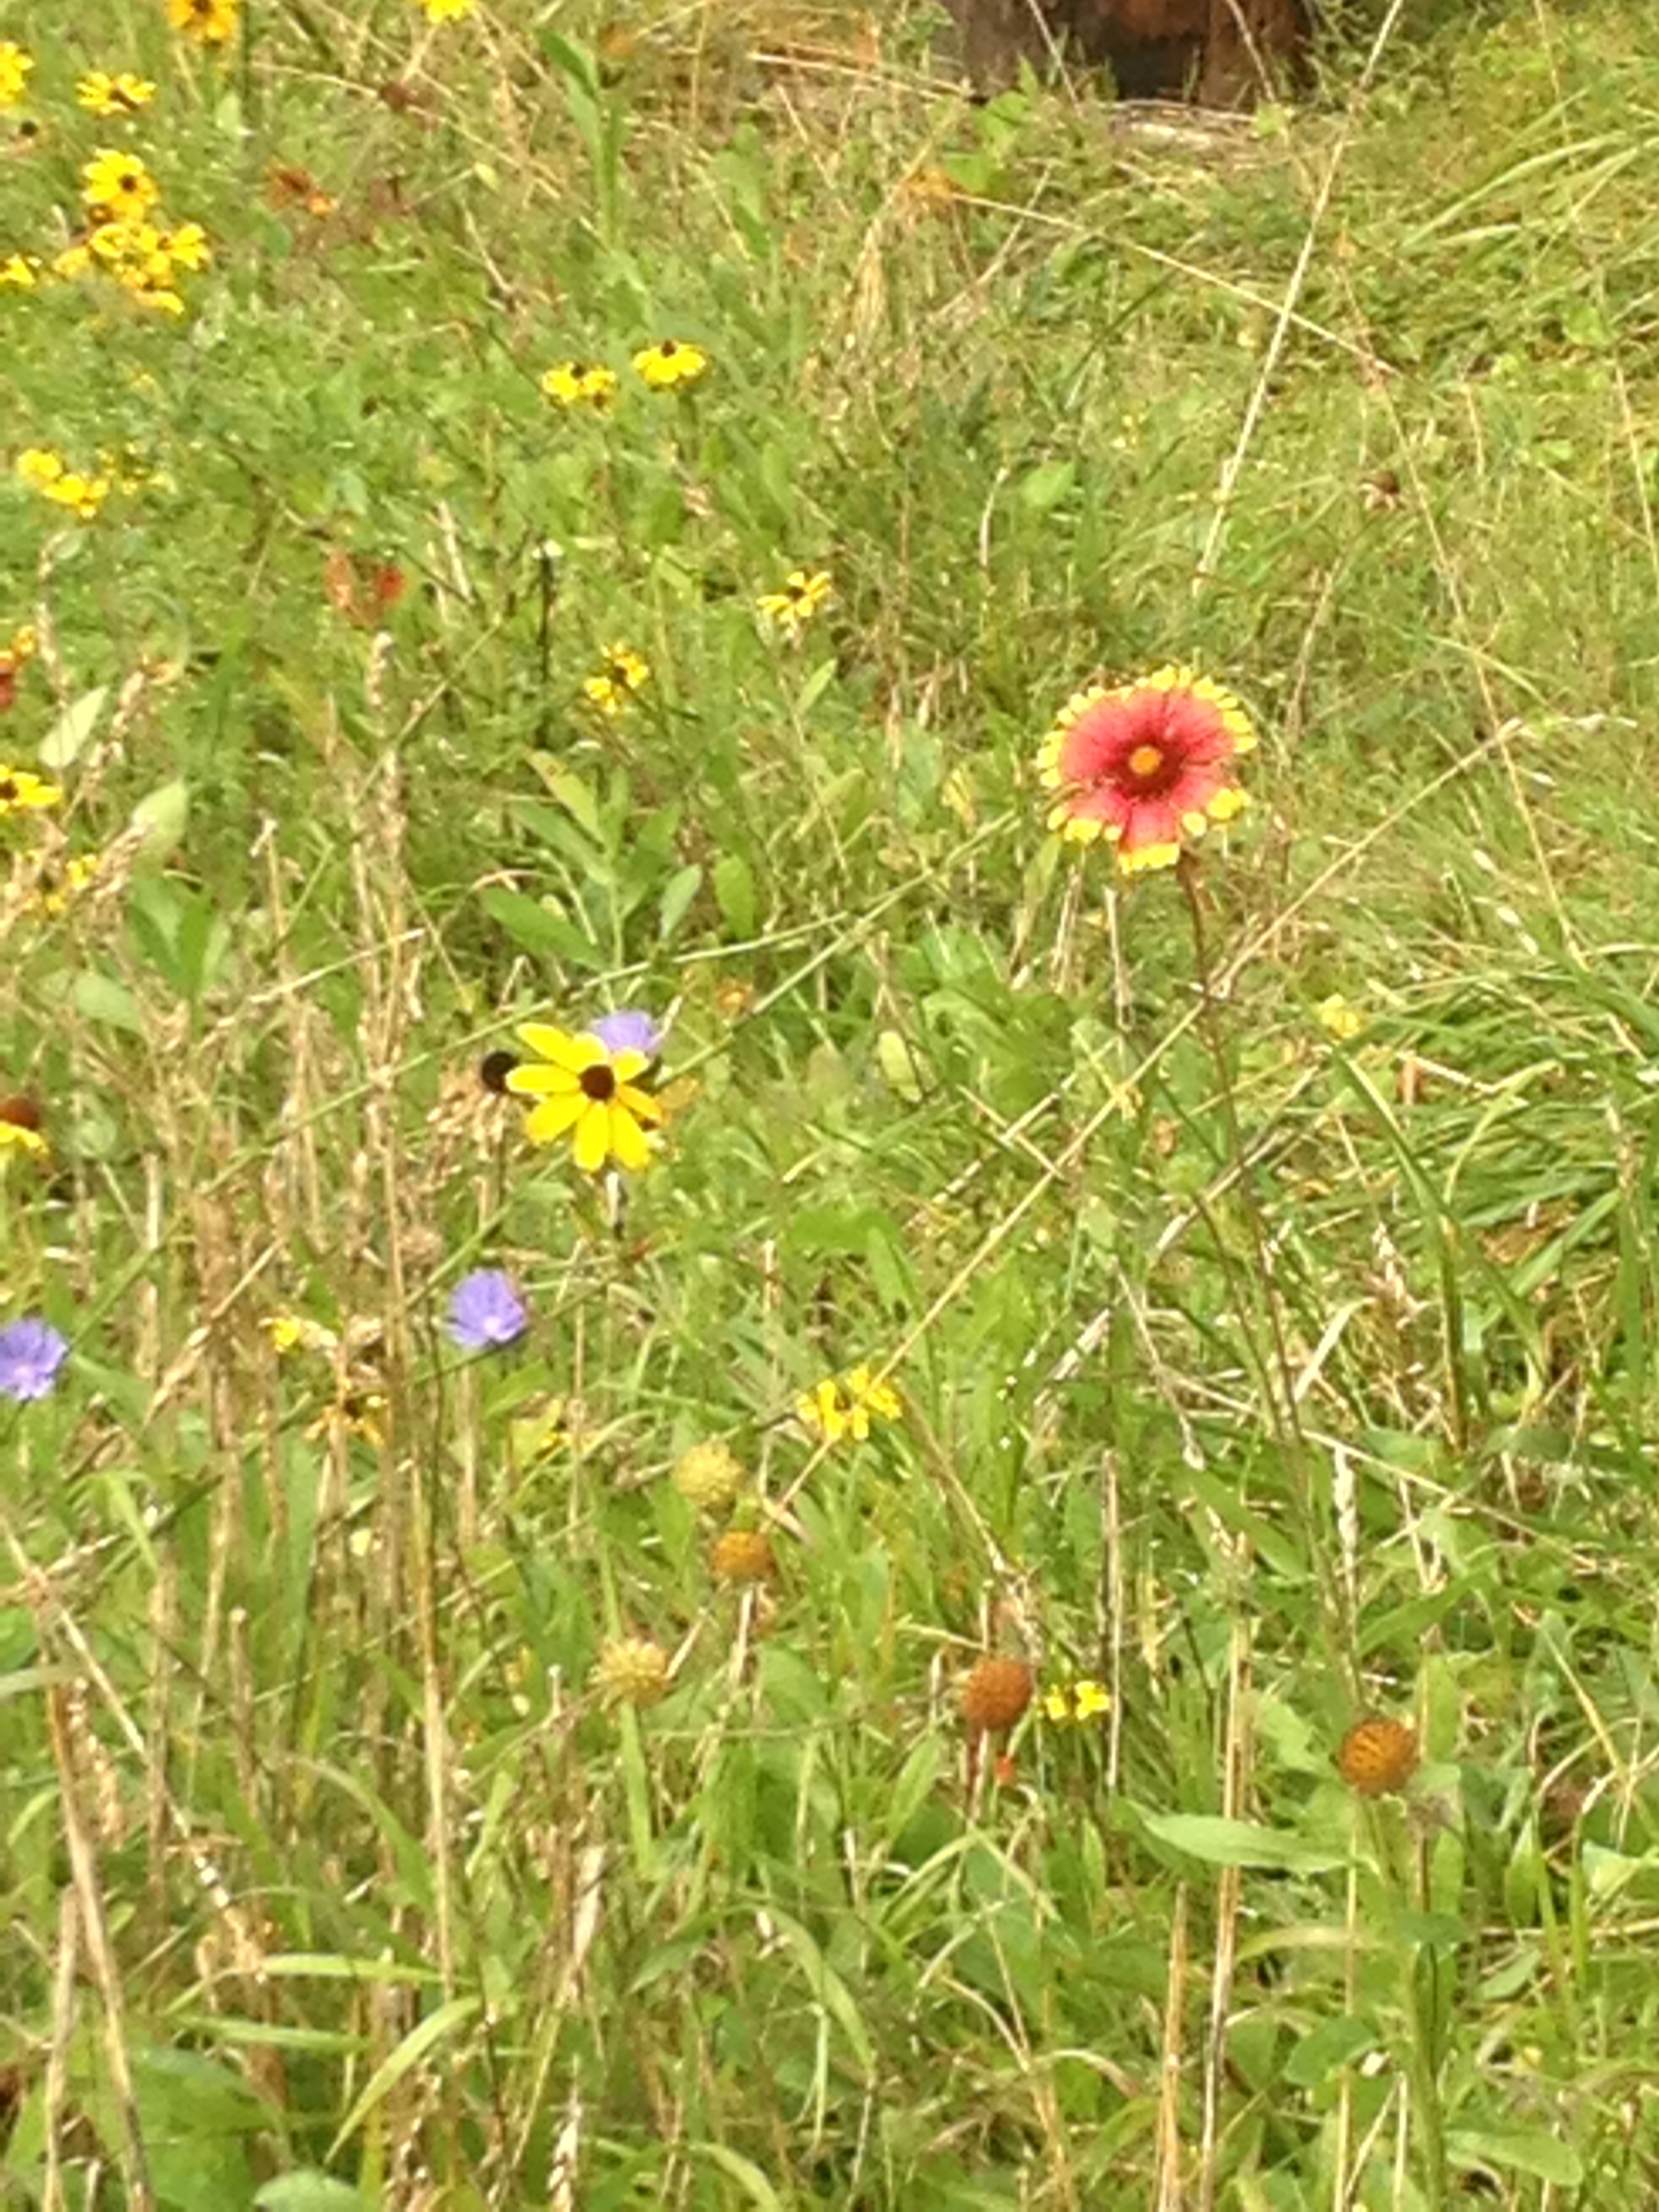 wildflowers bloom in the meadow